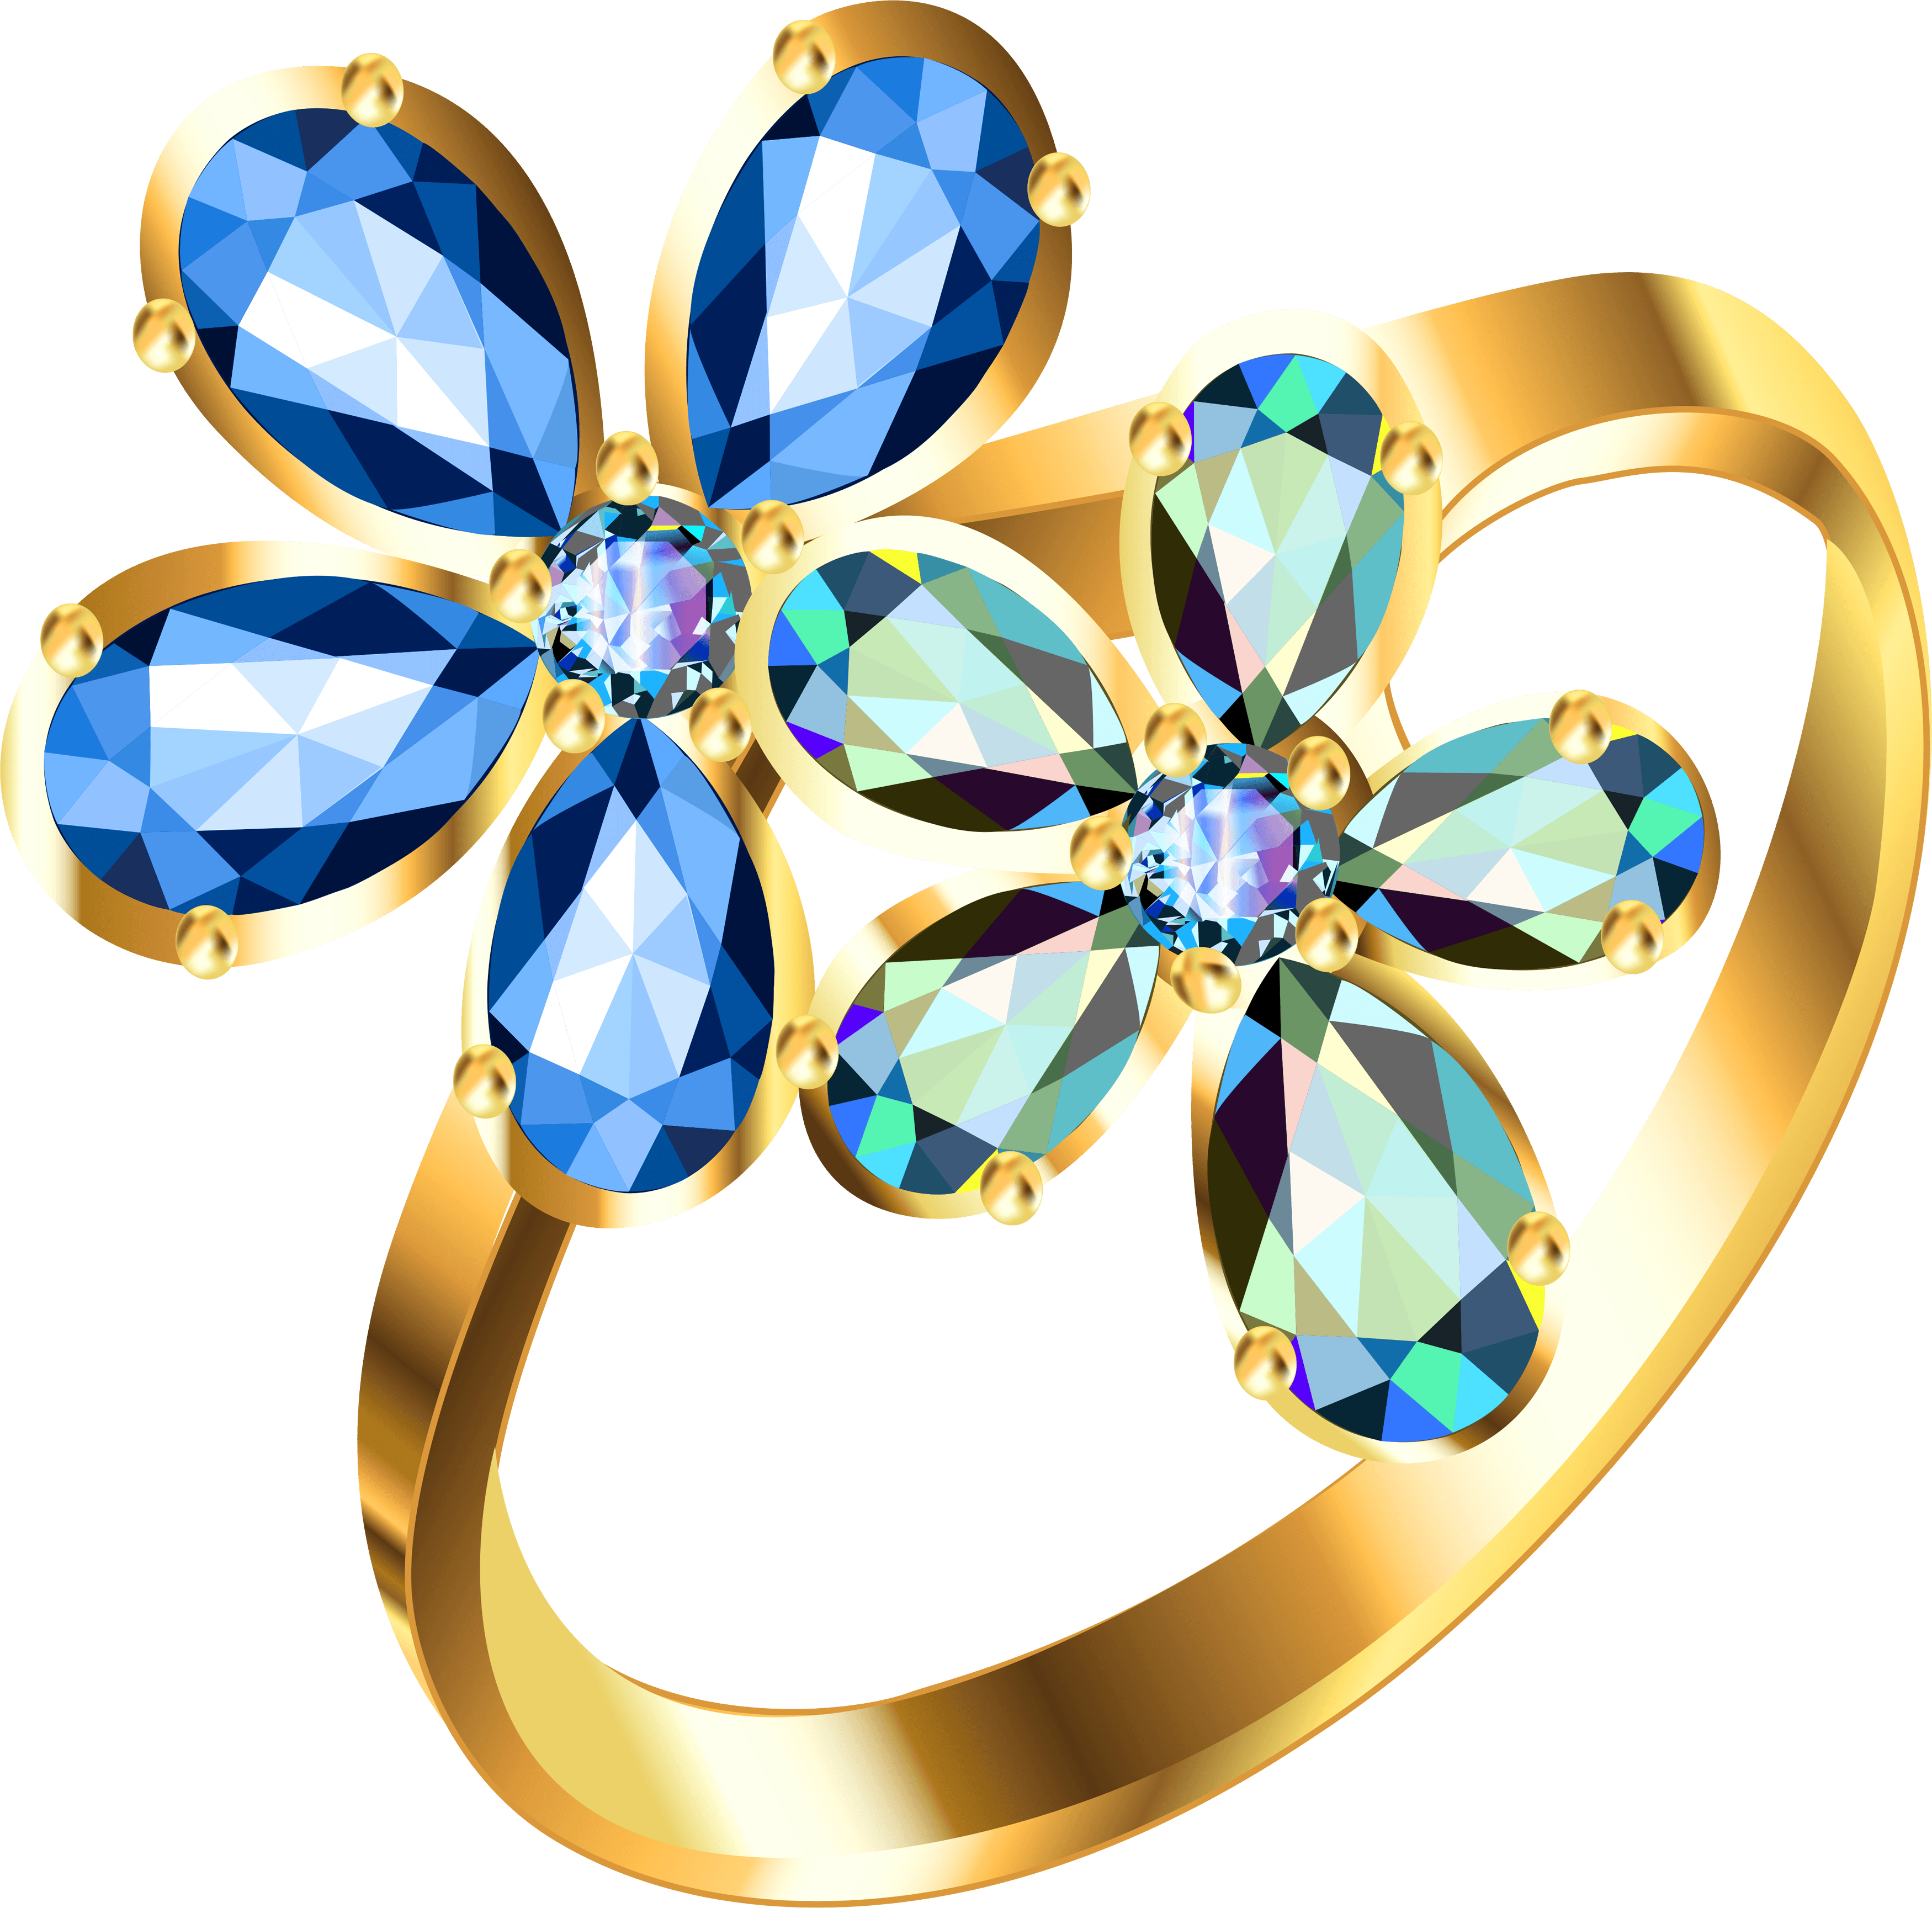 Gold ring png image. Diamonds clipart single